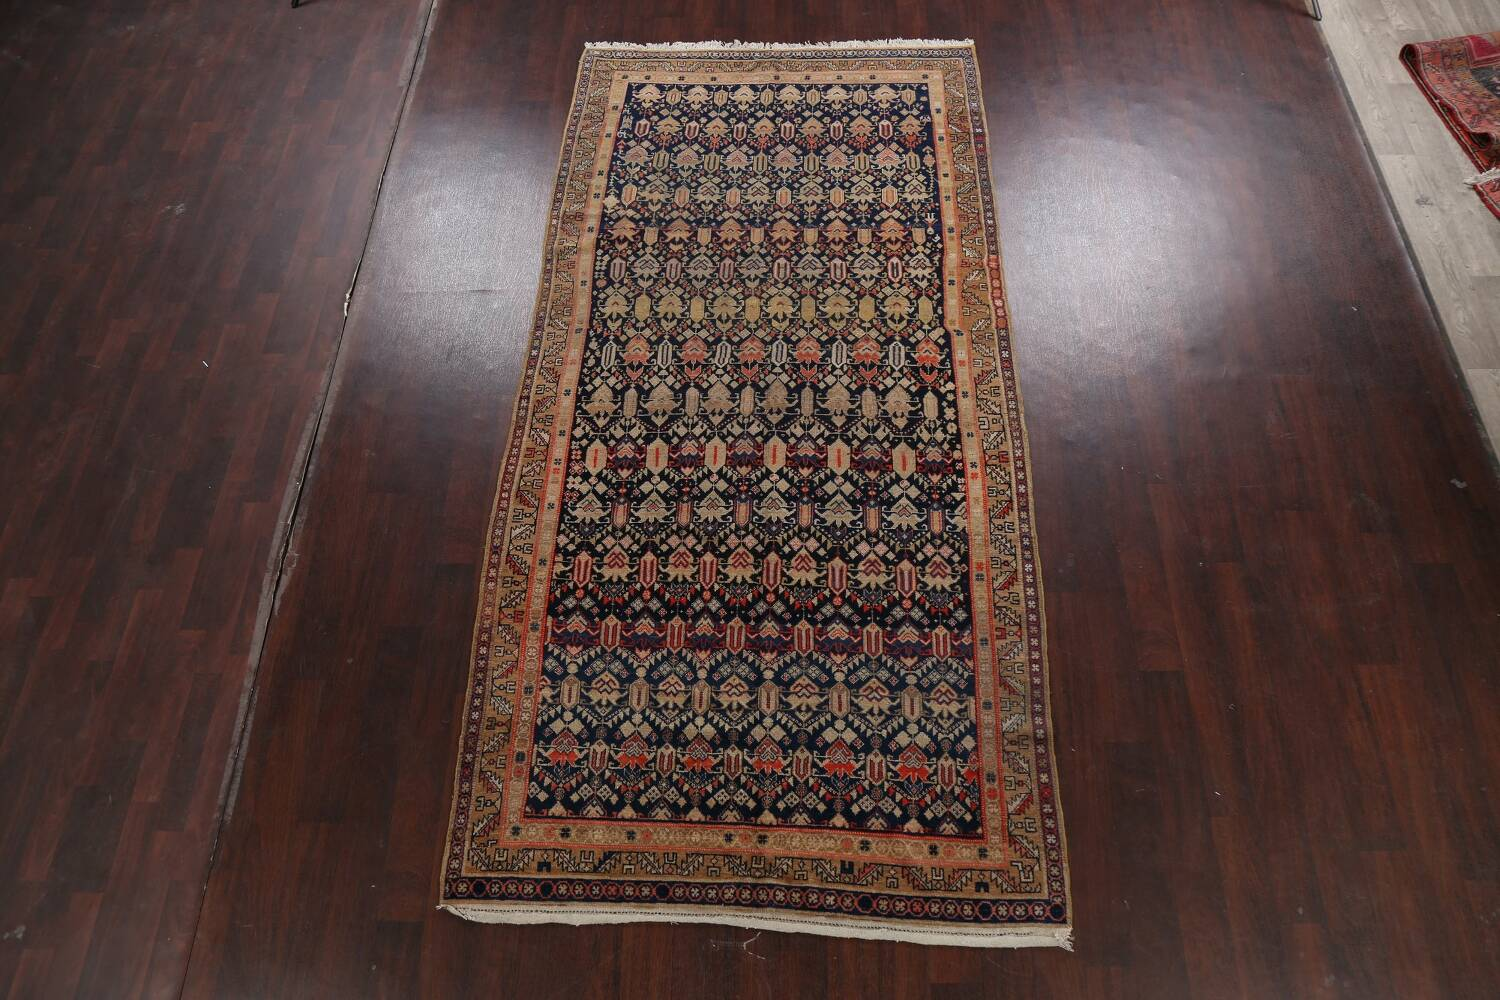 Pre-1900 Antique Vegetable Dye Malayer Persian Area Rug 5x11 image 2